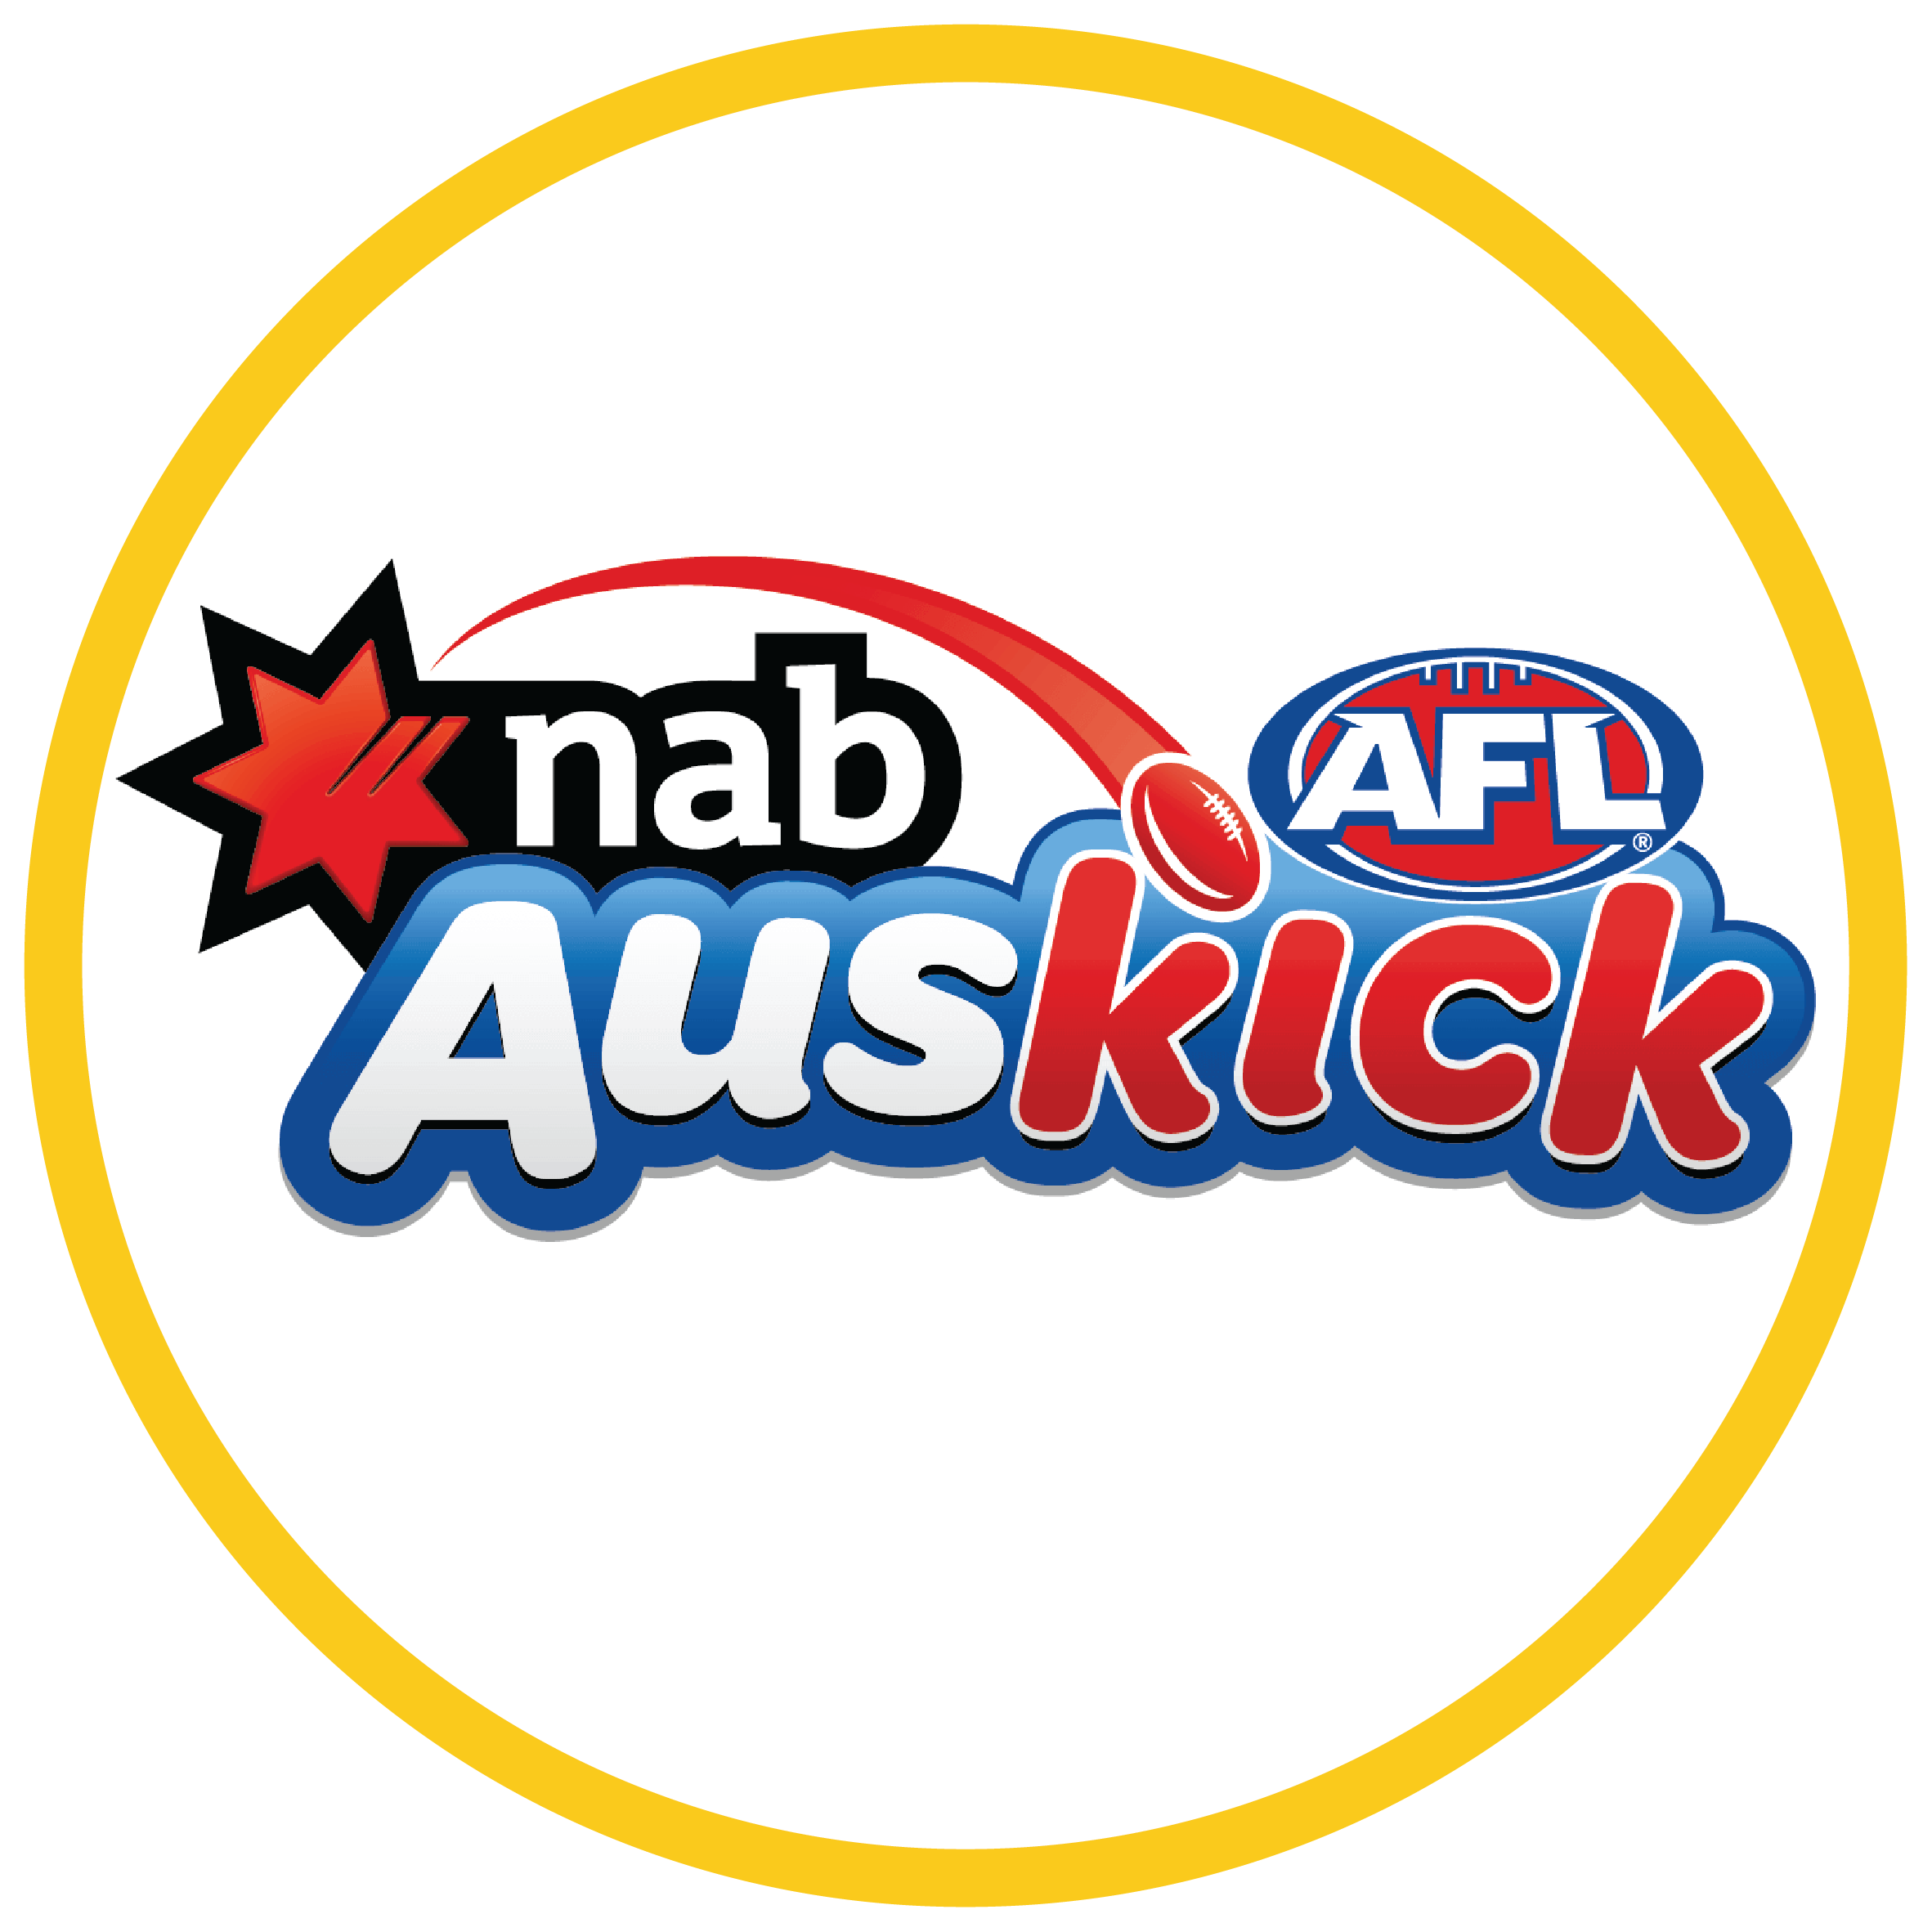 NAB Auskick icon for Springwood Pumas